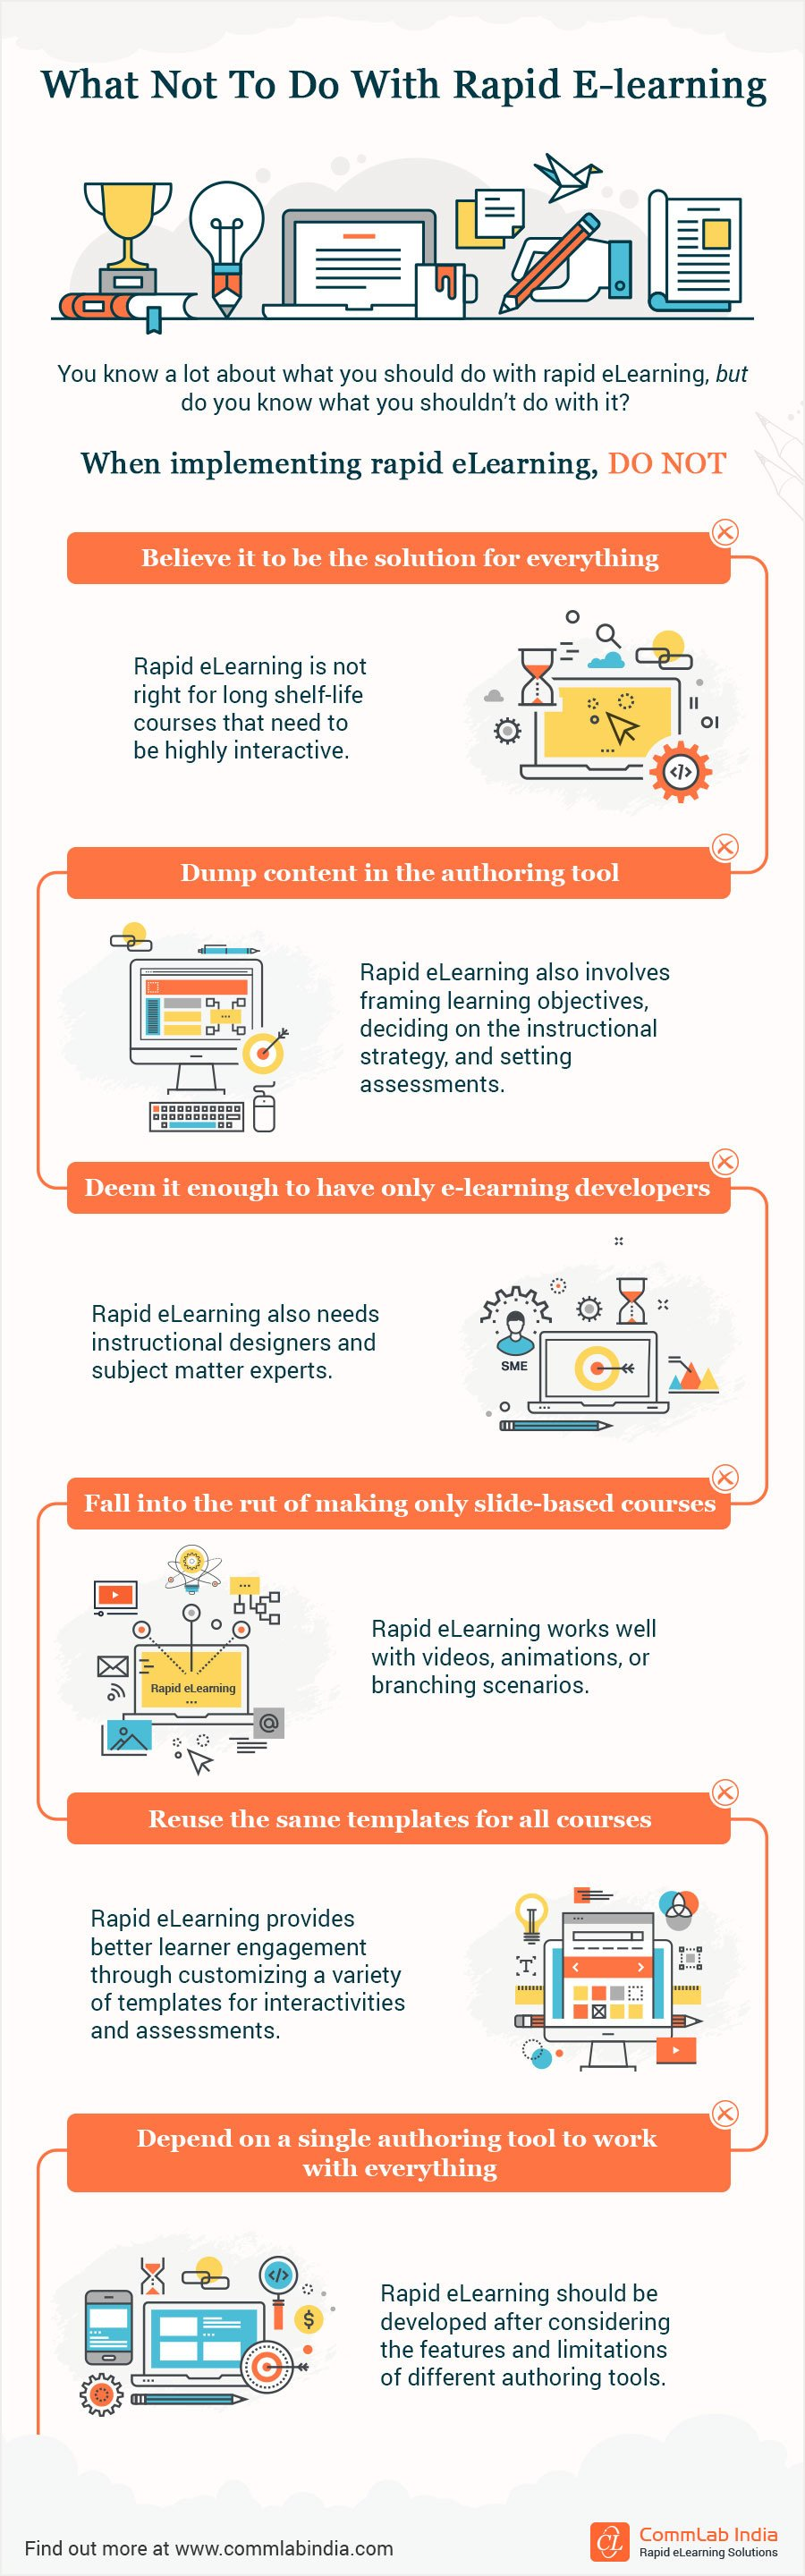 Rapid eLearning Development: What NOT to do